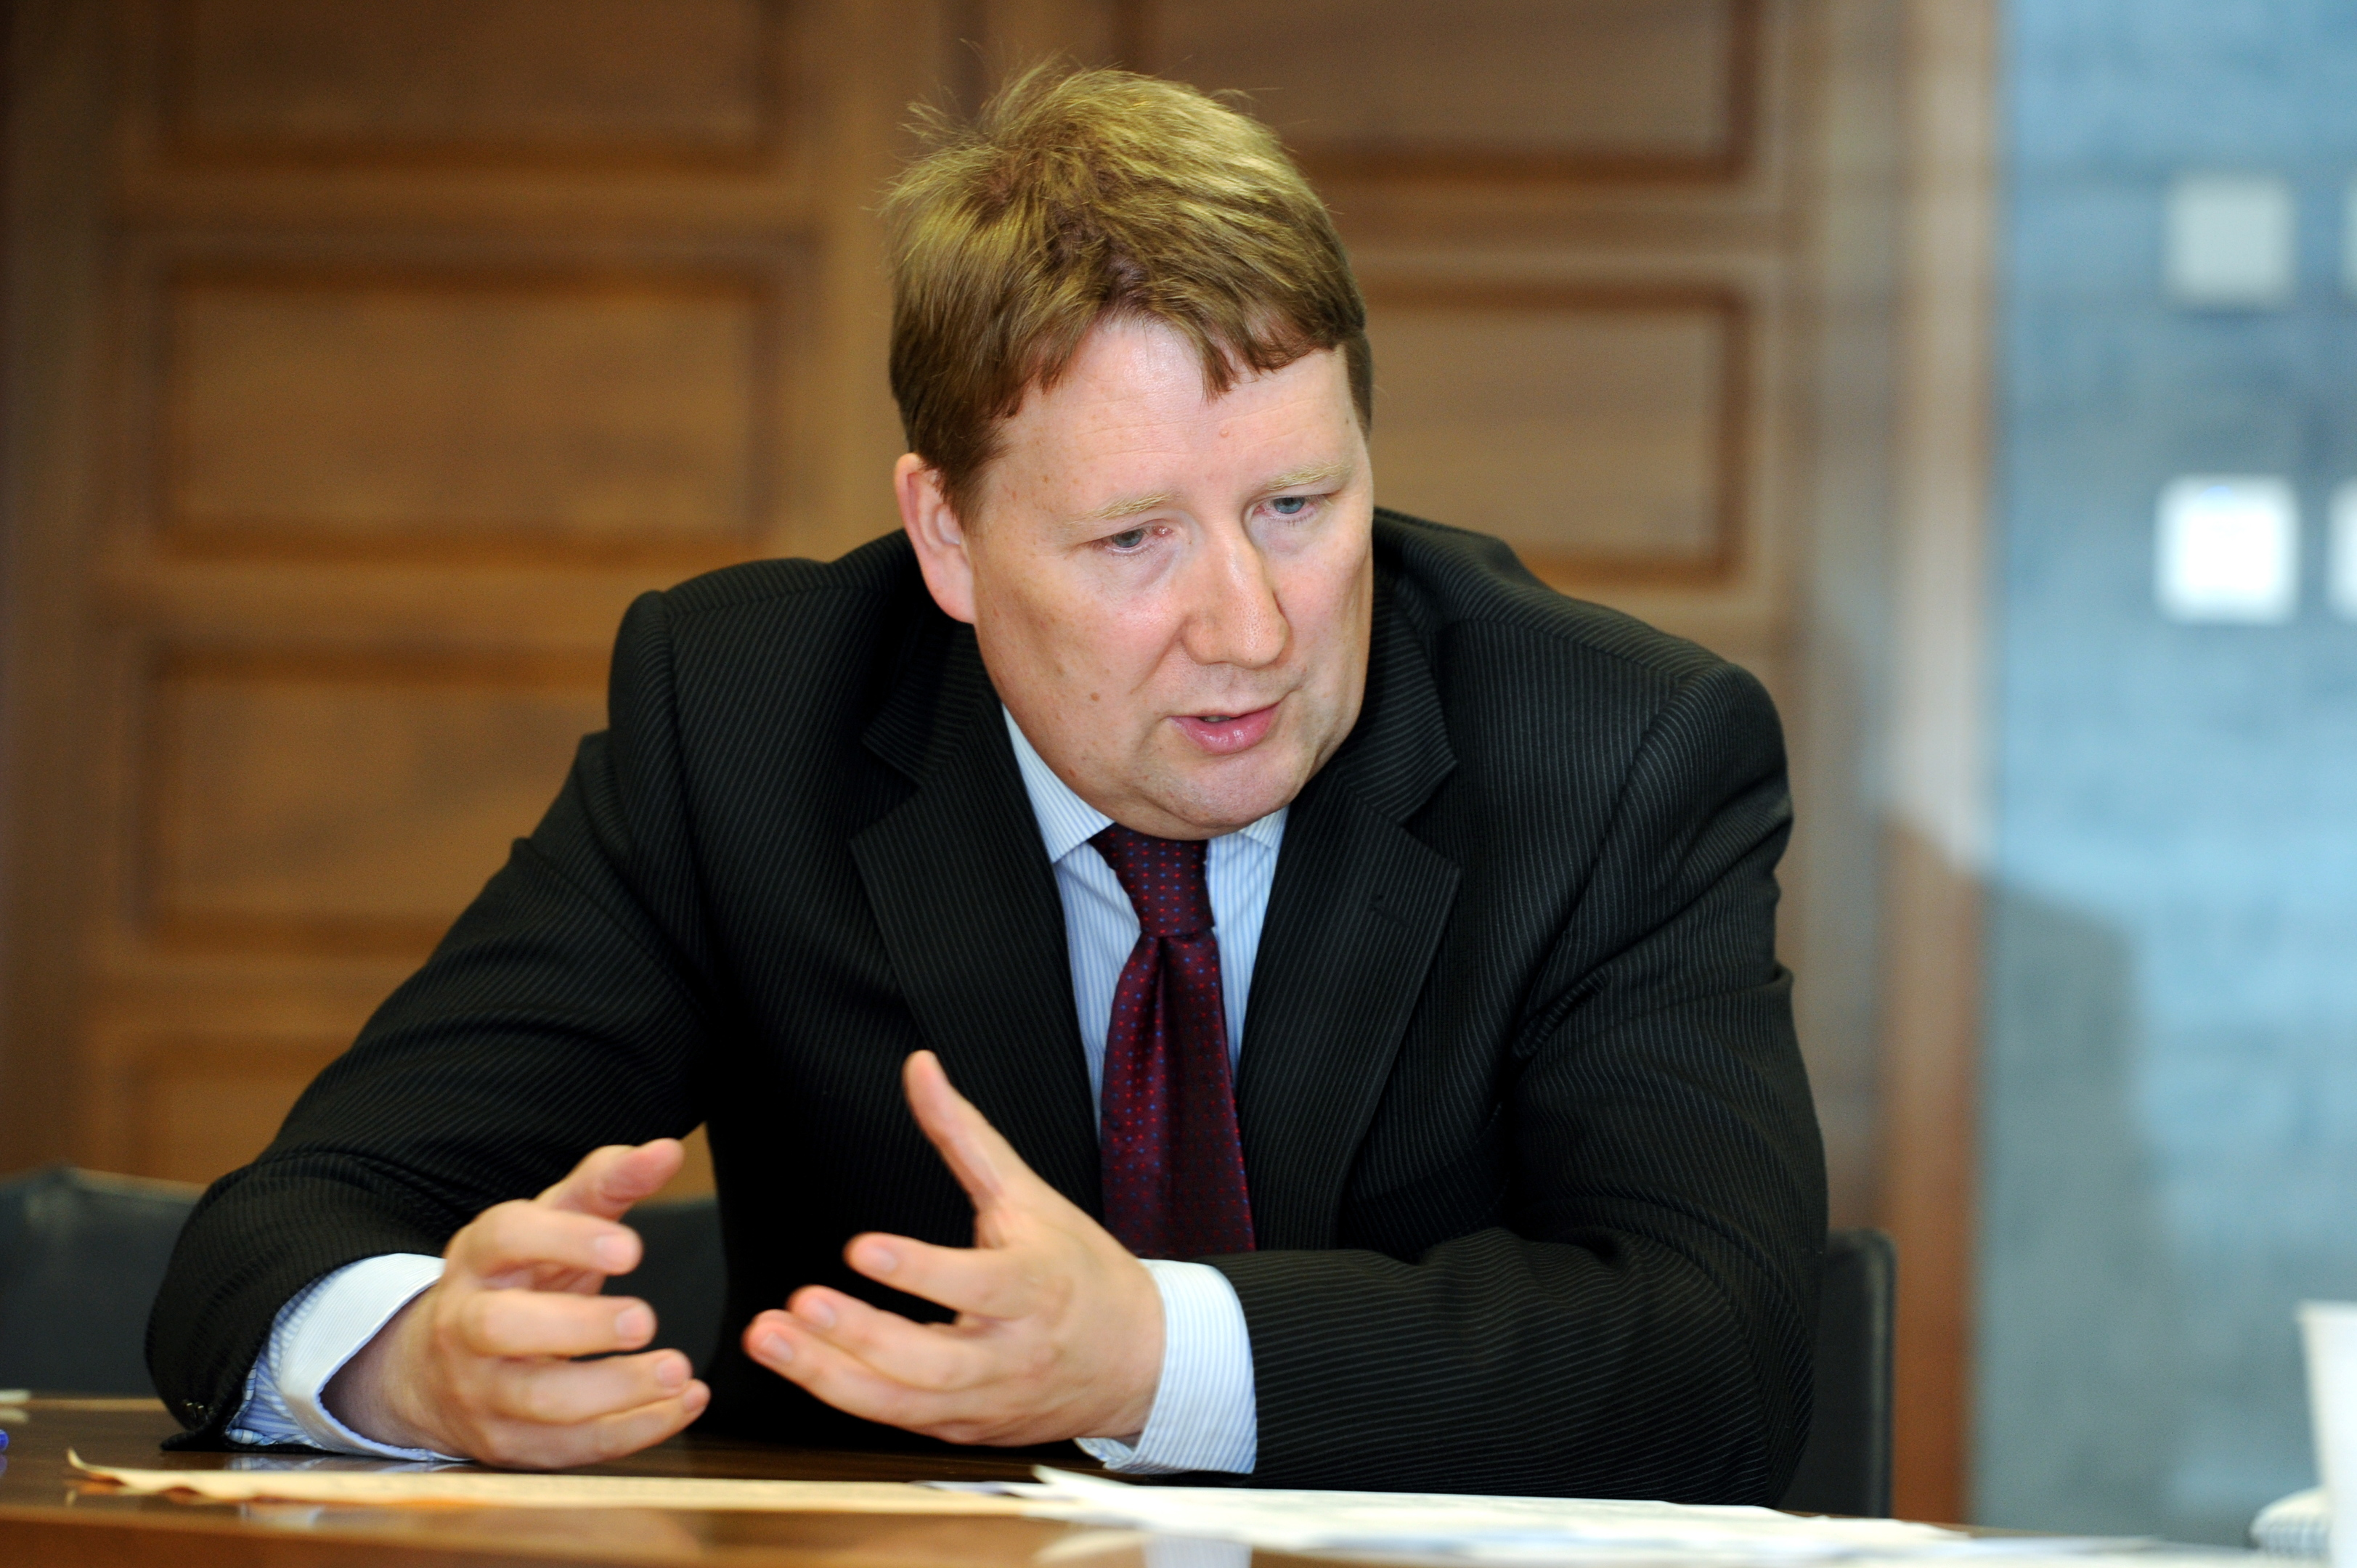 Ritchie Johnson said the council has a zero tolerance approach to abuse of staff.